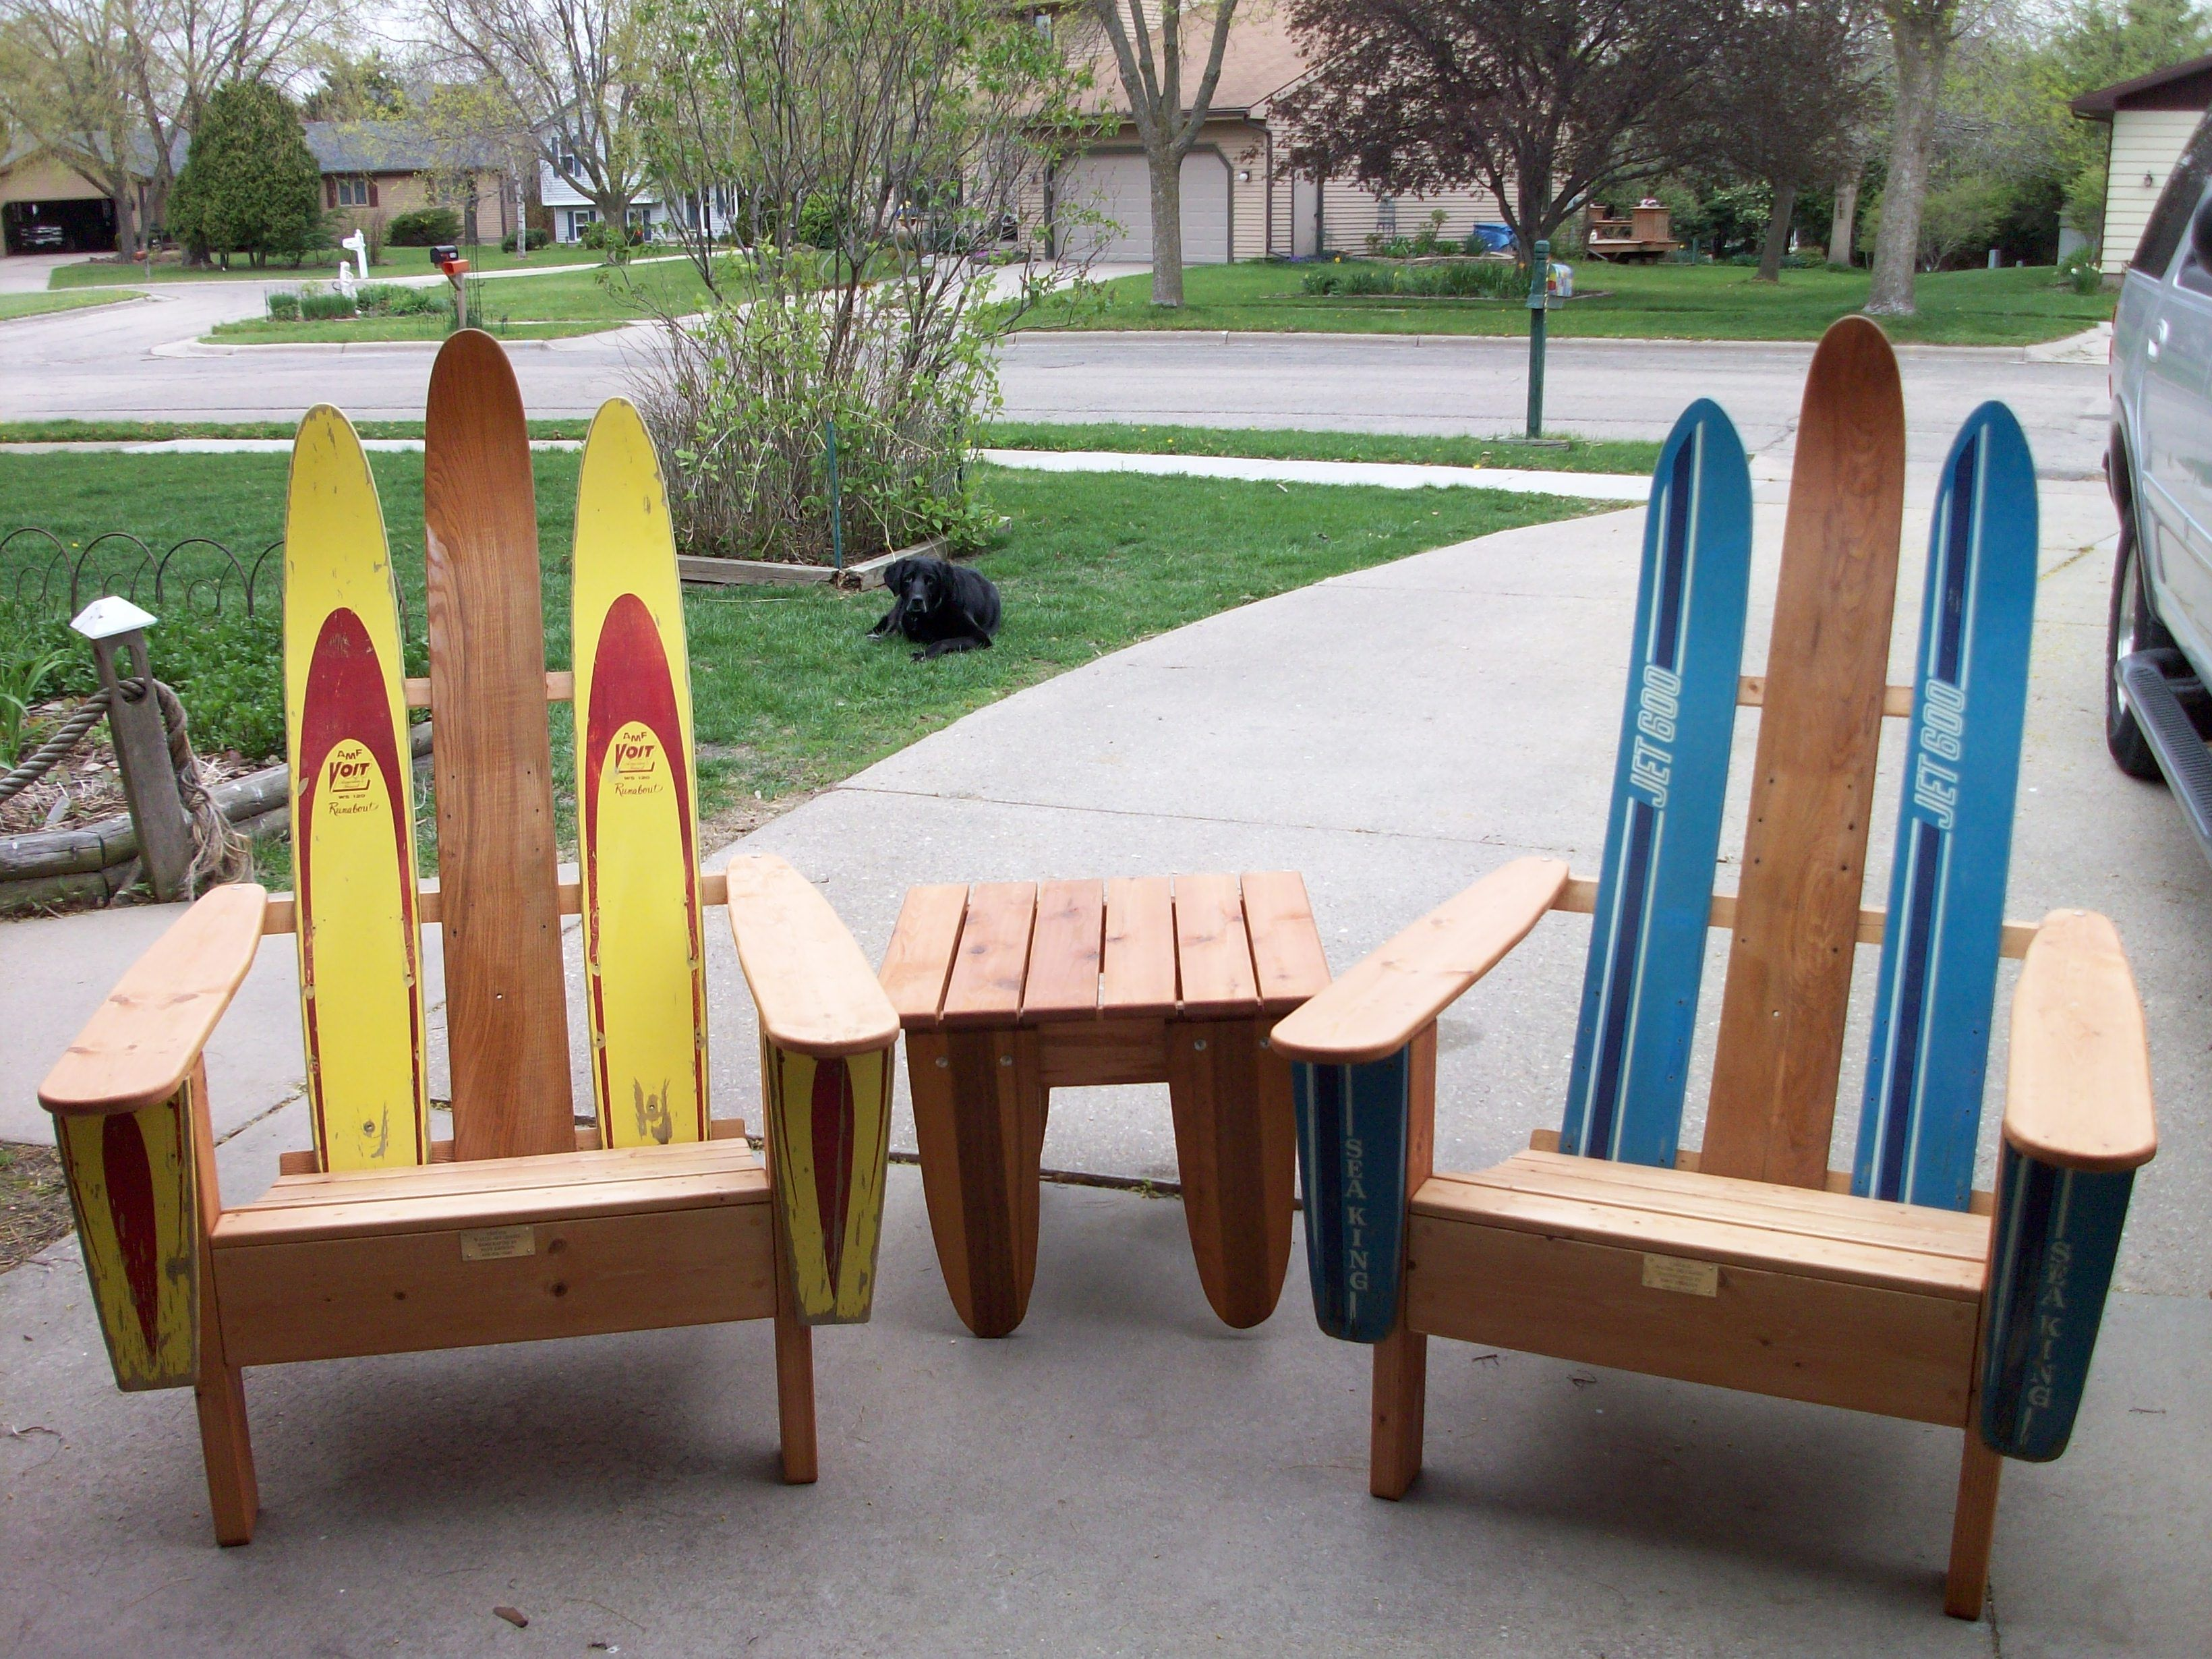 Vintage Wood Water Skis Made Into Outdoor Chairs With Matching